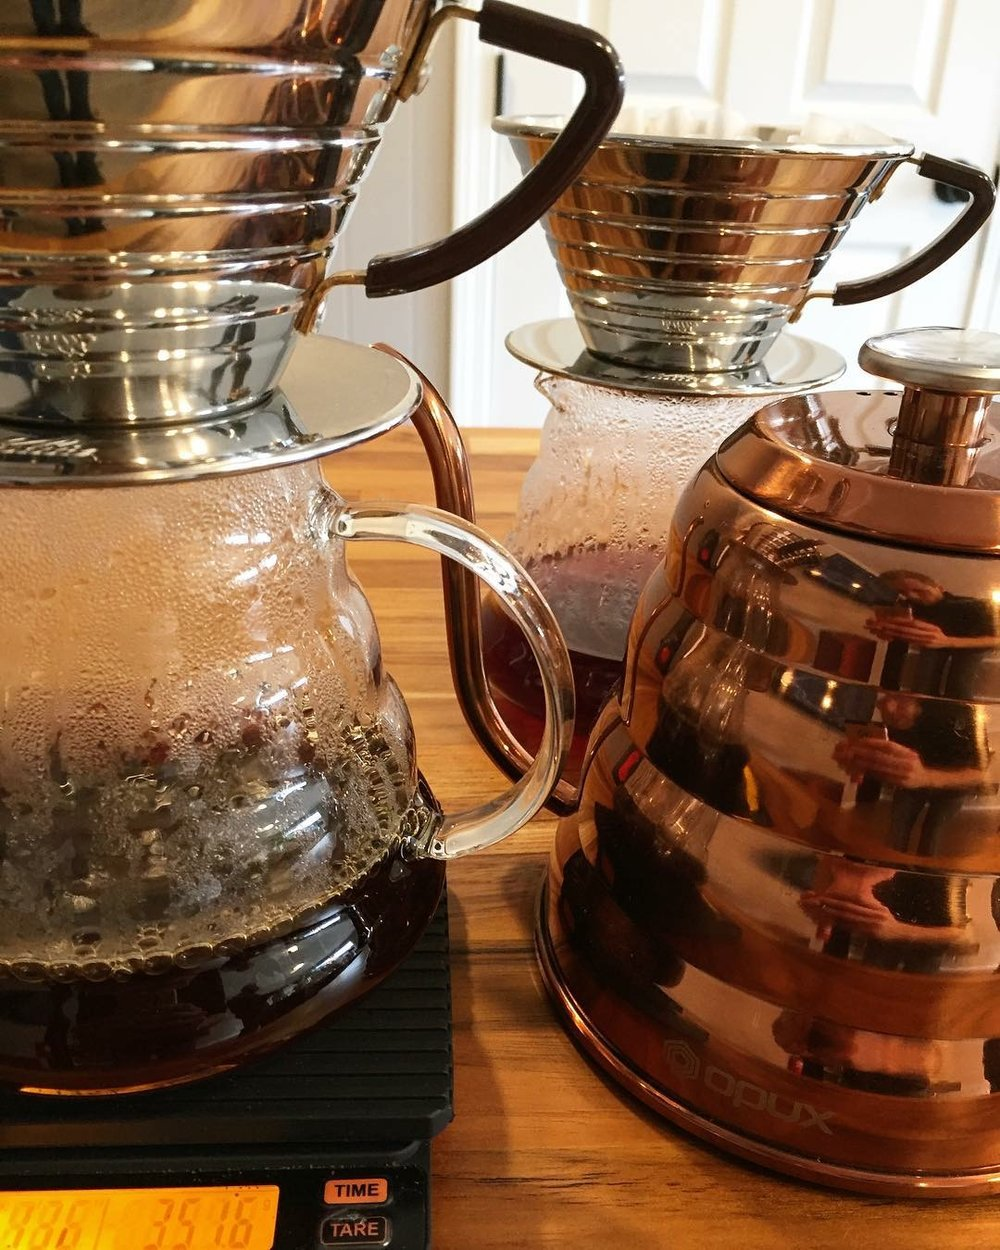 Try our pour overs to experience the tasting notes on our freshly roasted coffee beans from Narrative Coffee Roasters.